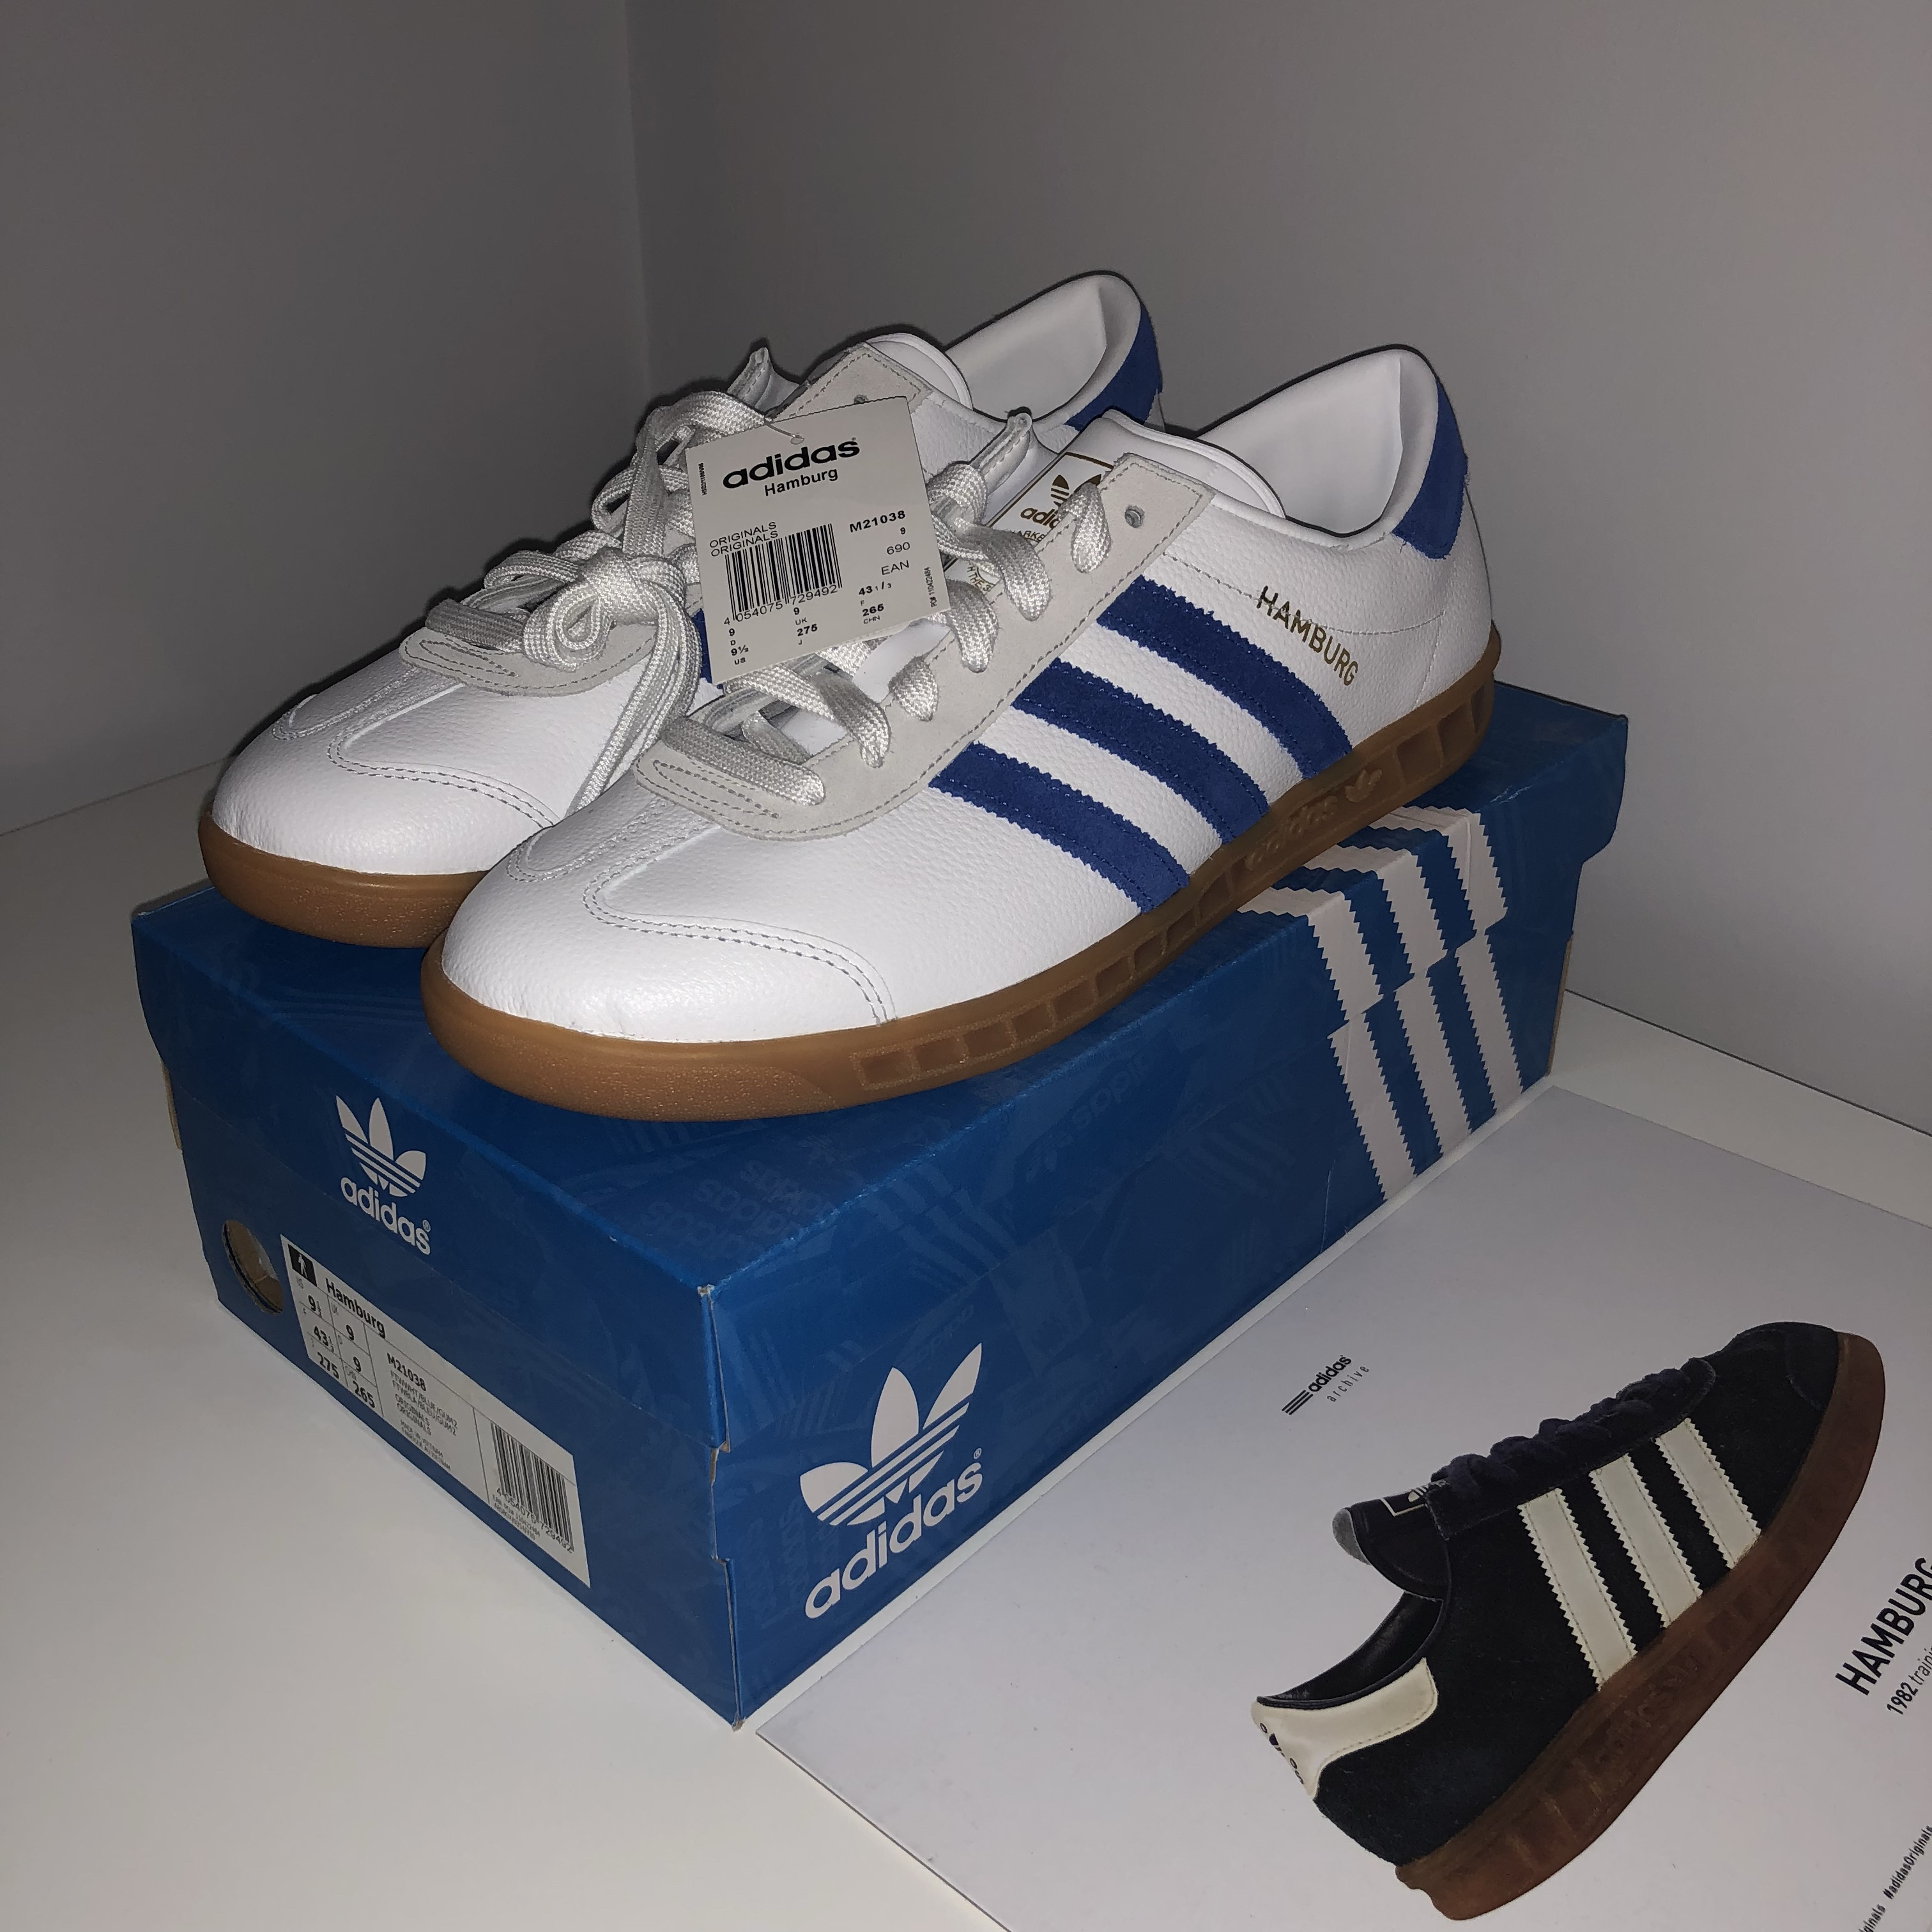 Adidas Hamburg, White leather, blue suede stripes and...